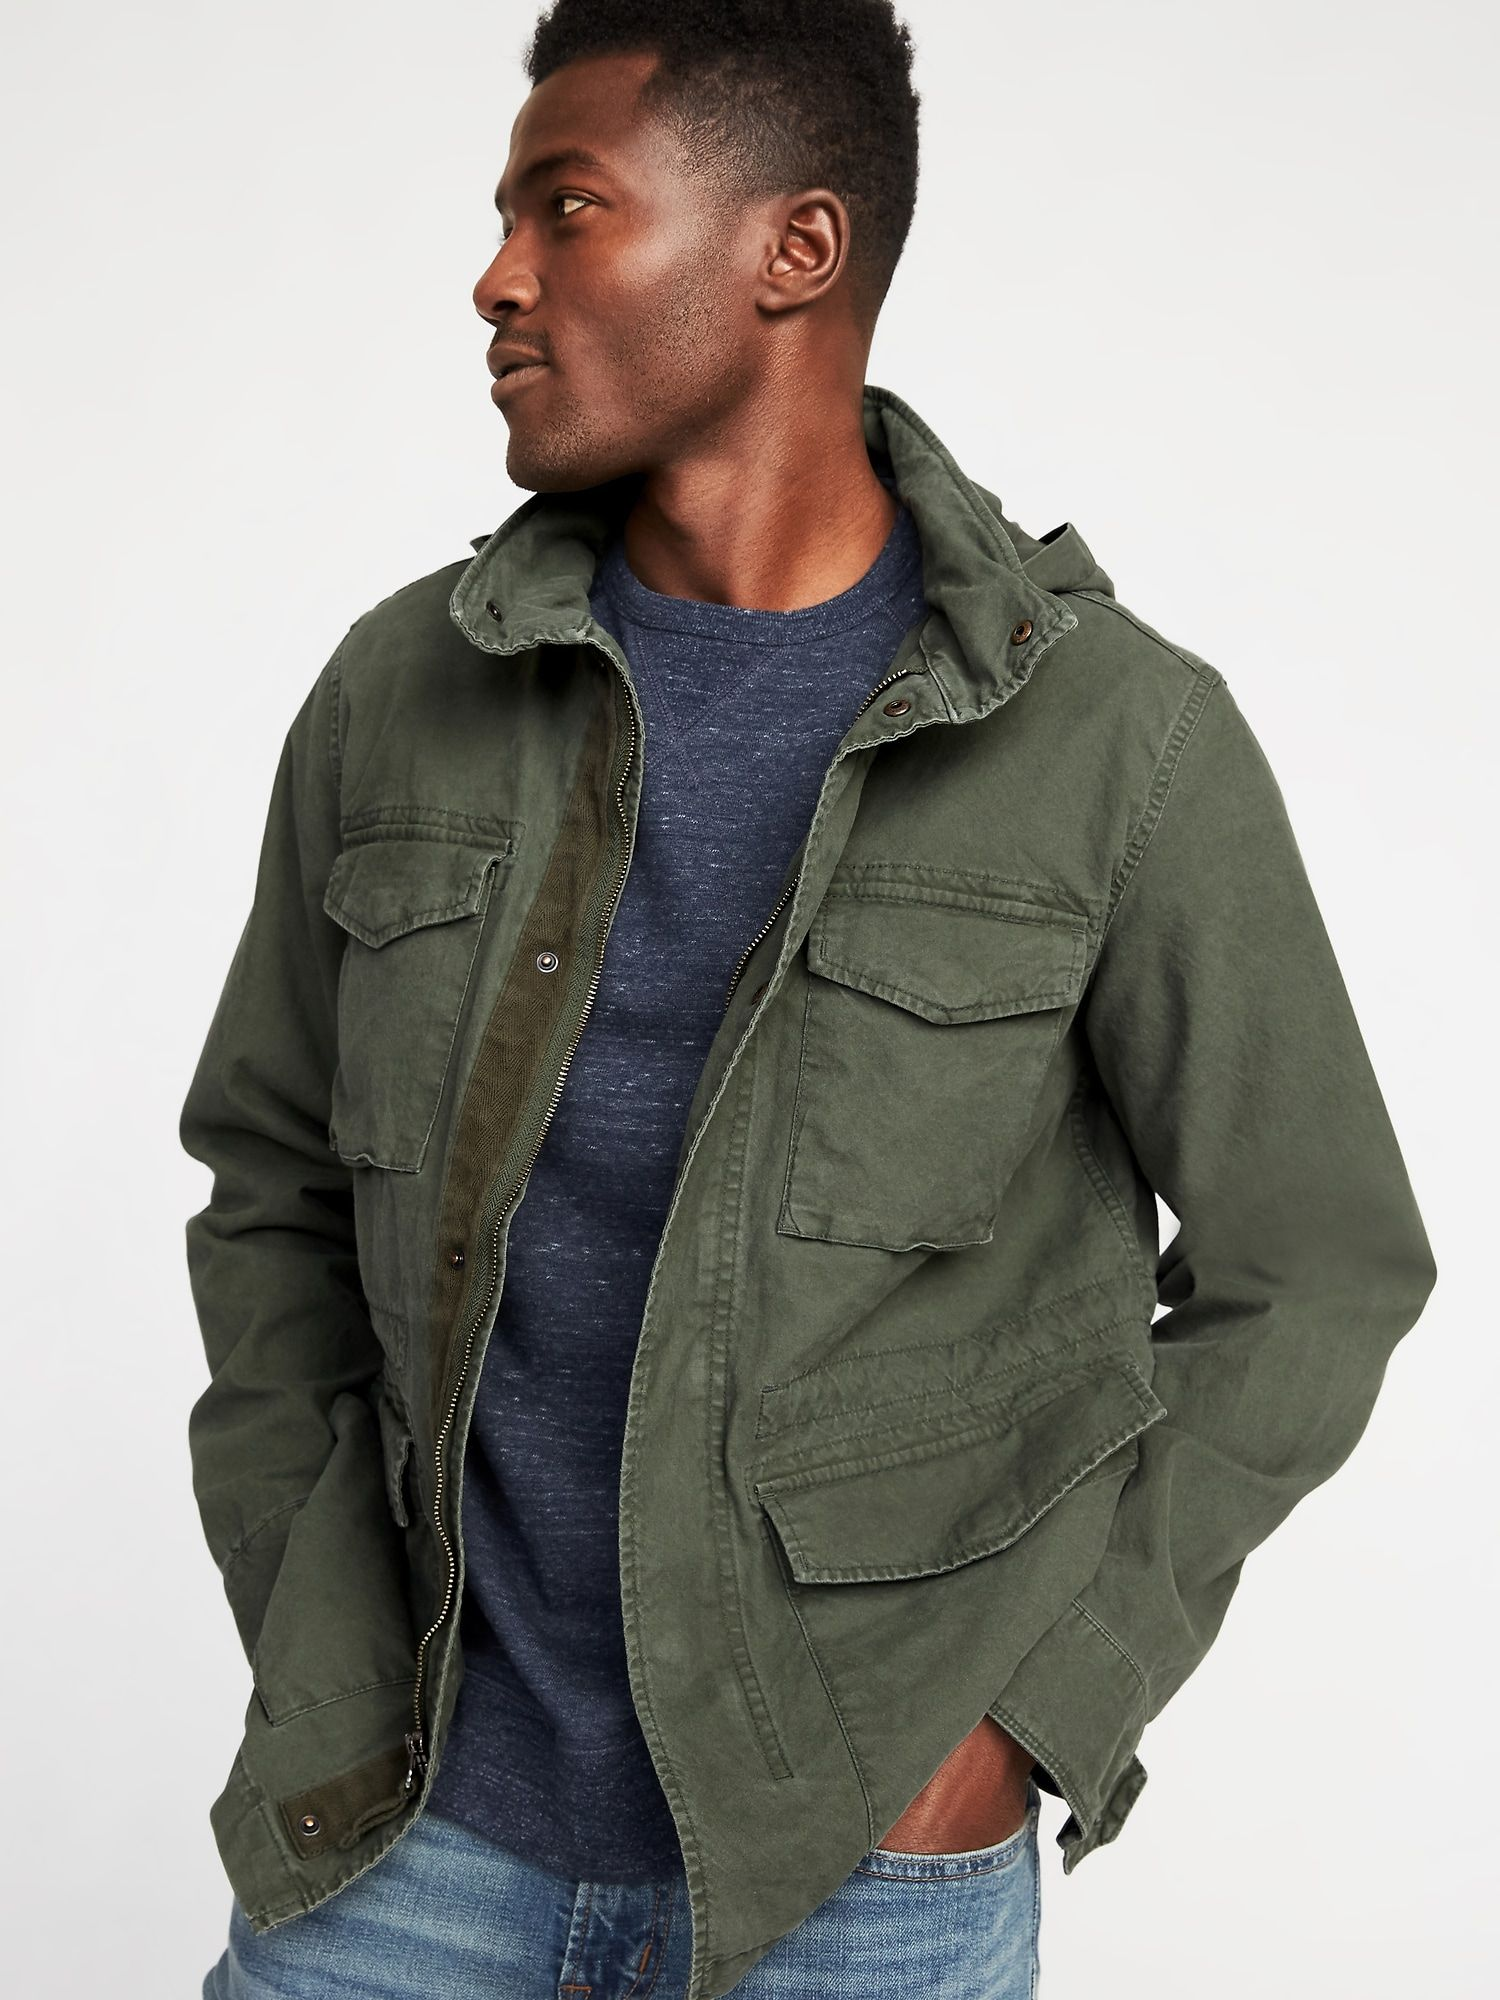 Product Photo Military Jacket Outfits Mens Military Jacket Mens Jackets [ 2000 x 1500 Pixel ]